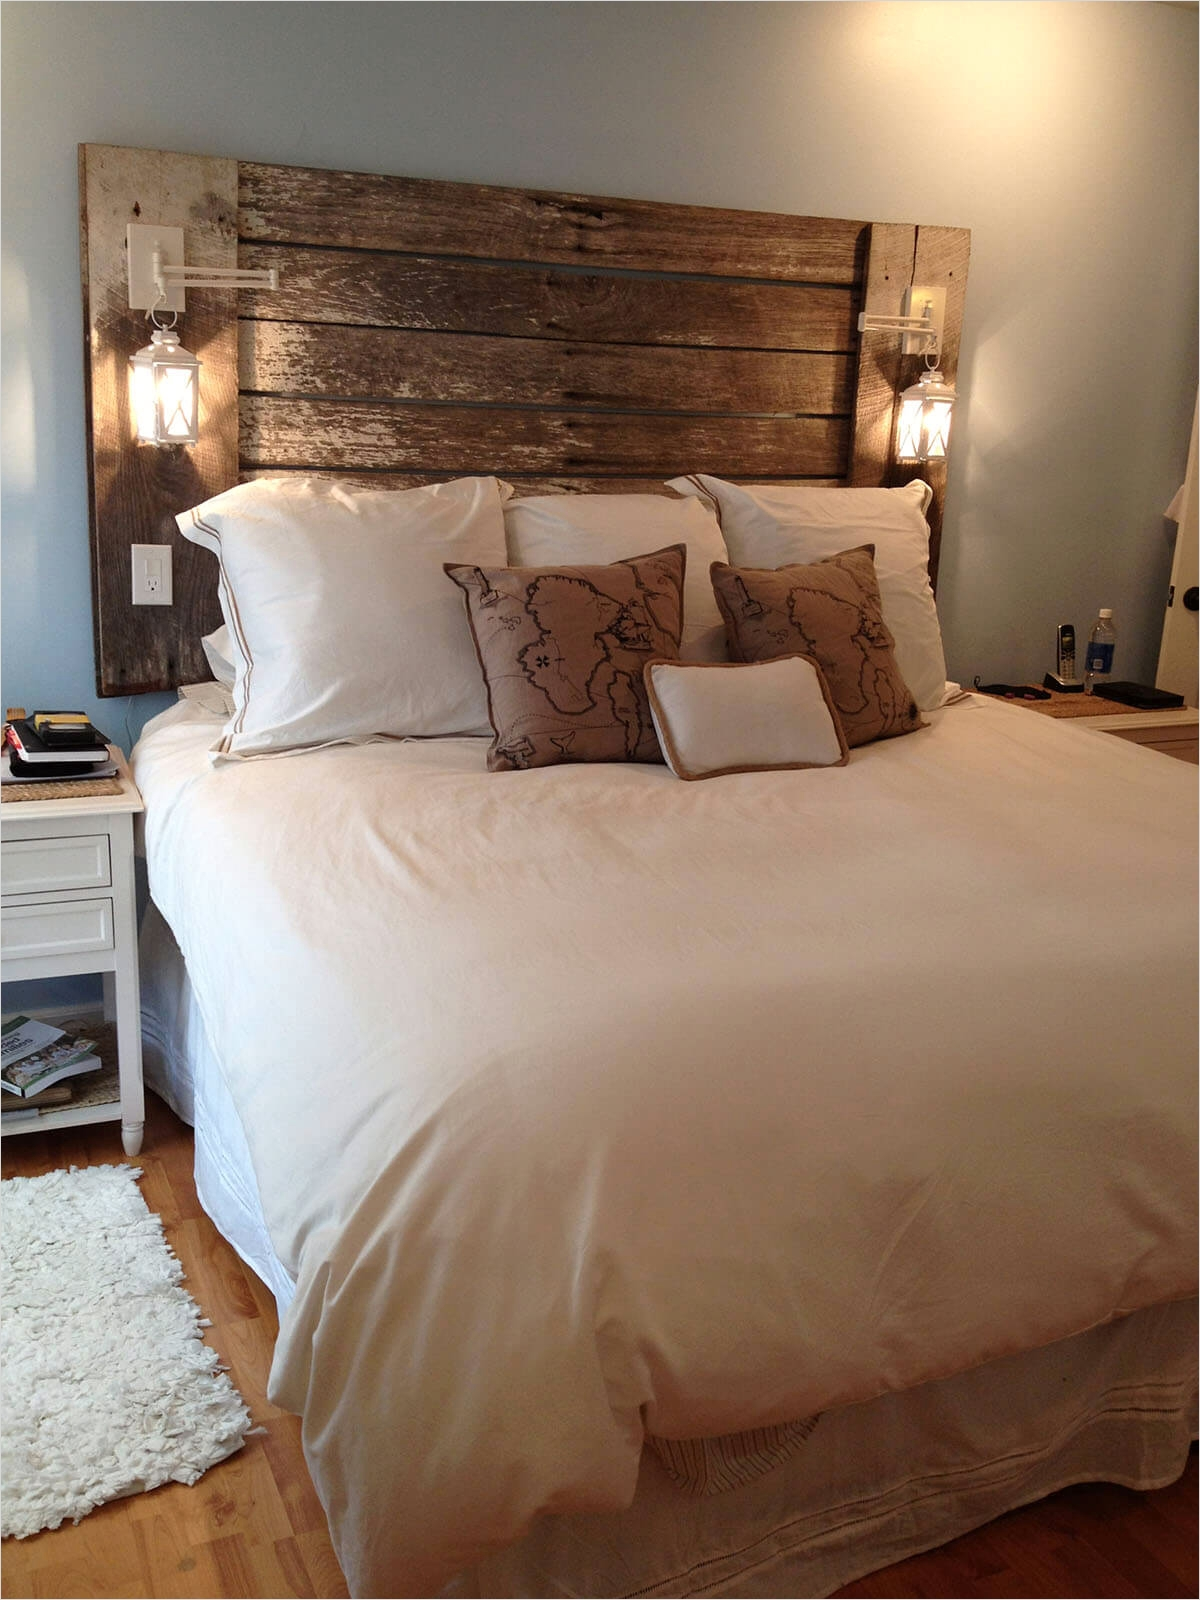 43 Stunning Country Farmhouse Bedroom Ideas 73 39 Best Farmhouse Bedroom Design and Decor Ideas for 2017 2